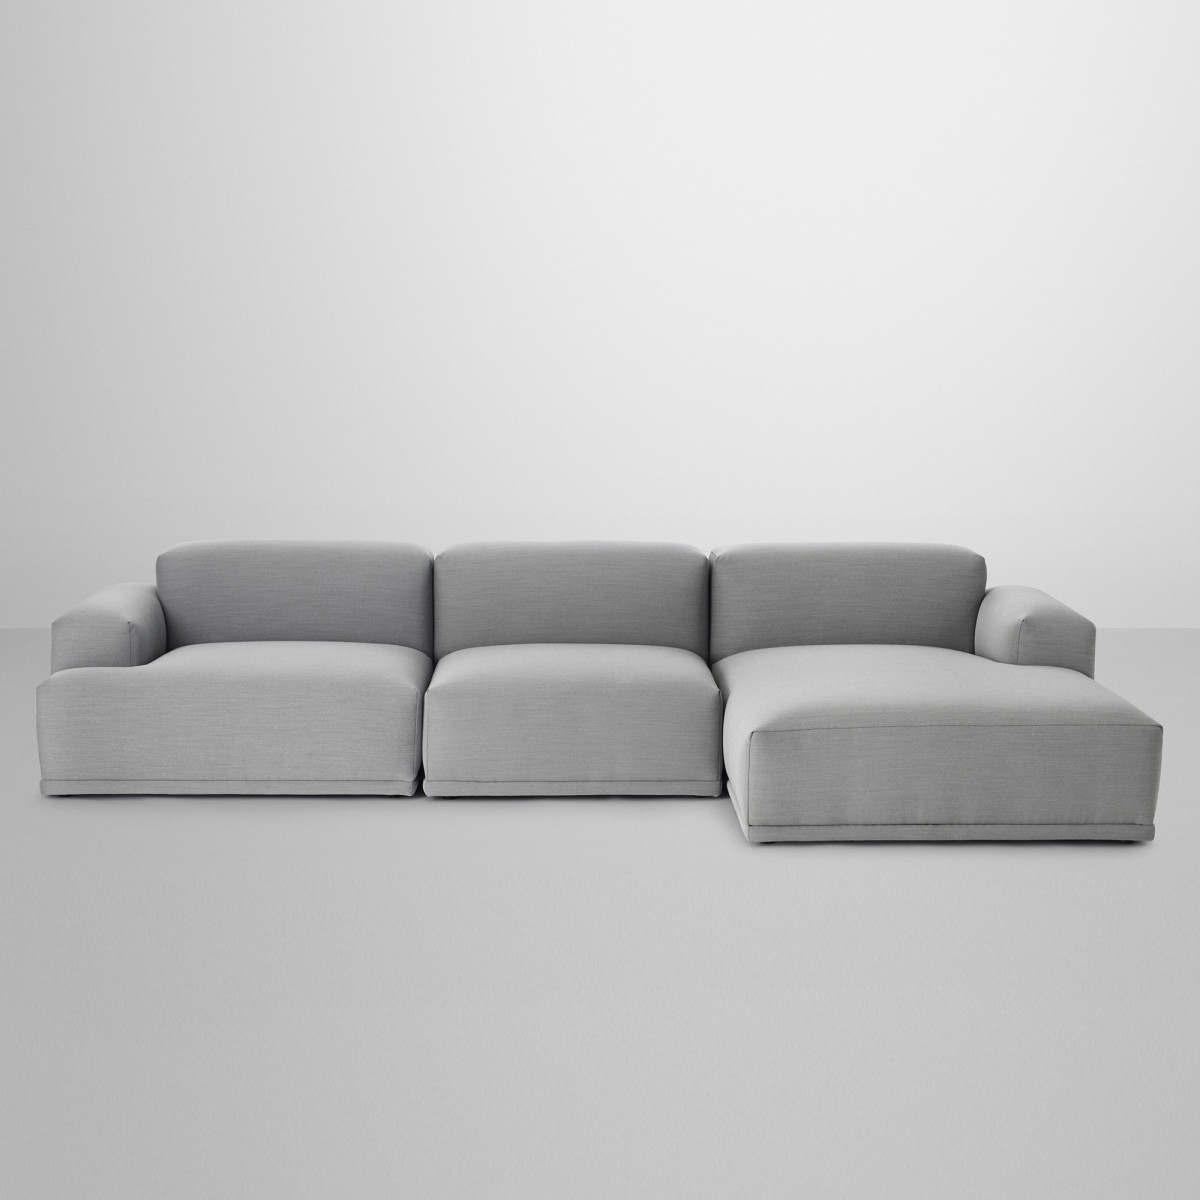 Full Size of Muuto Rest Sofa Sale Connect Review 2 Seater Sofabord Xl Around Outline Chaise Longue Oslo 3 Dimensions Pris Uk Cecilie Manz Rundes W Schillig Creme Polyrattan Sofa Muuto Sofa